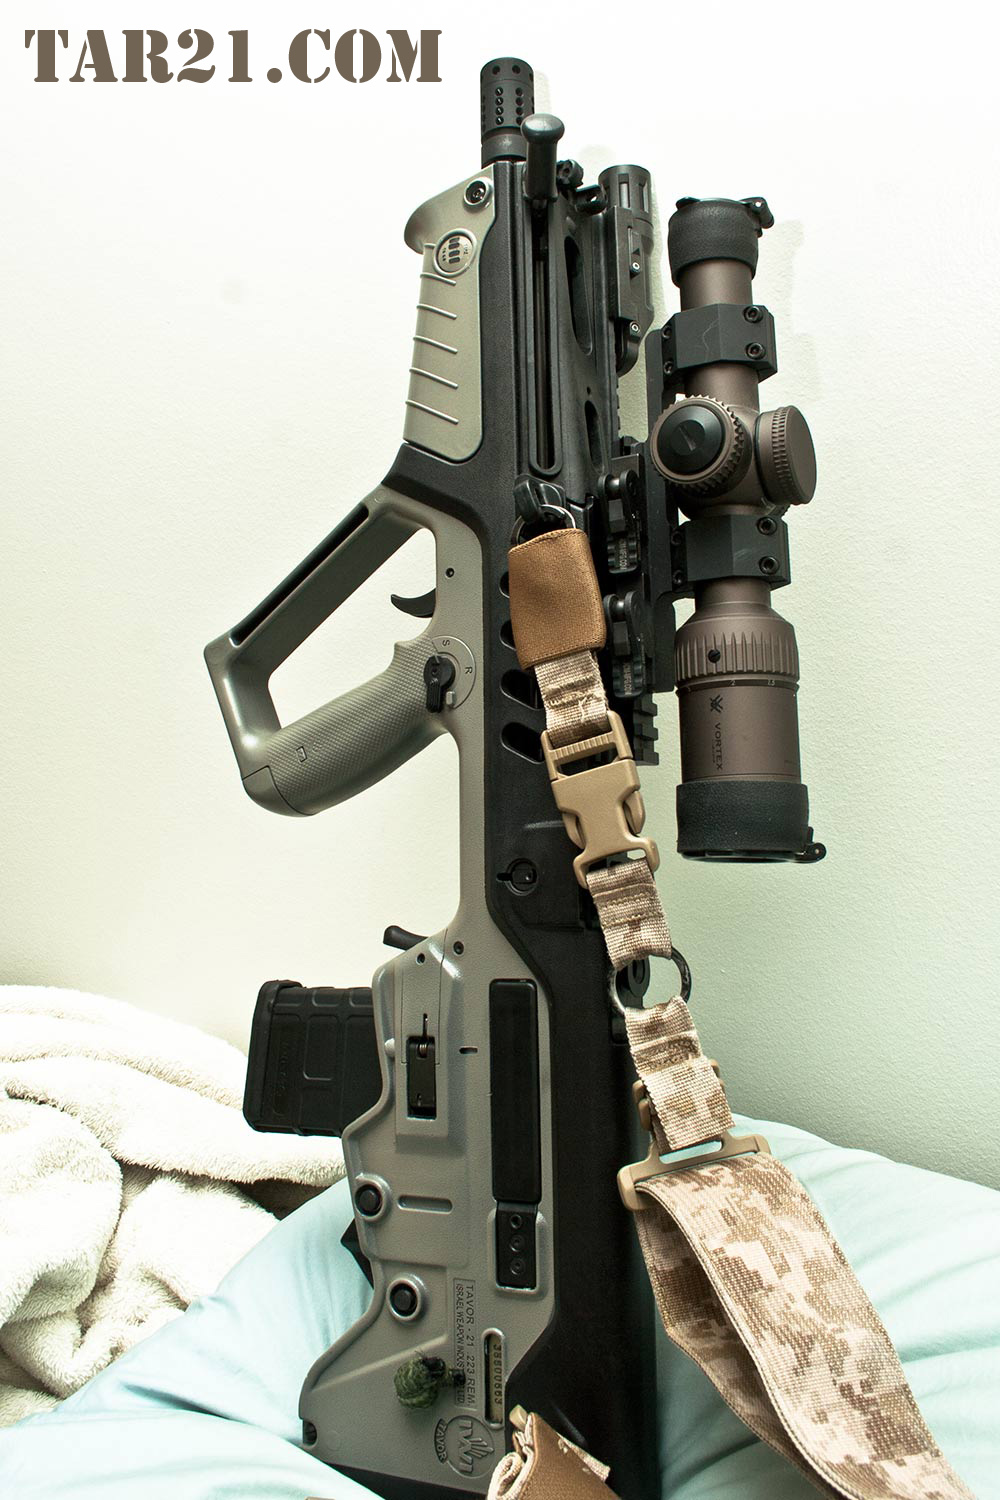 My SBR Tavor TAR-21 - NFA/Class 3 & FFL Discussion